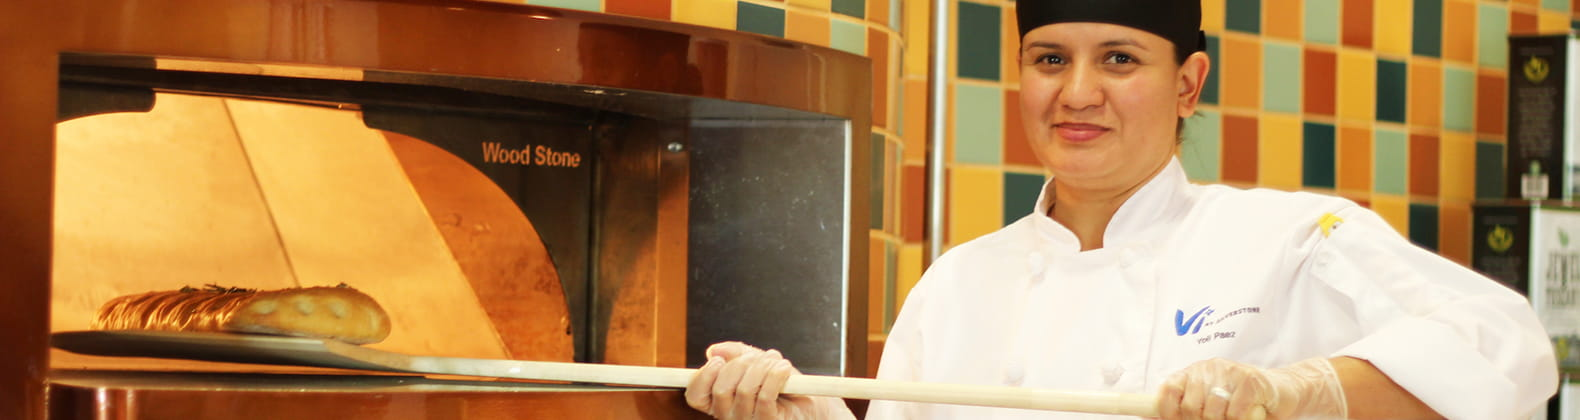 chef takes bread out of wood stone oven at retirement community